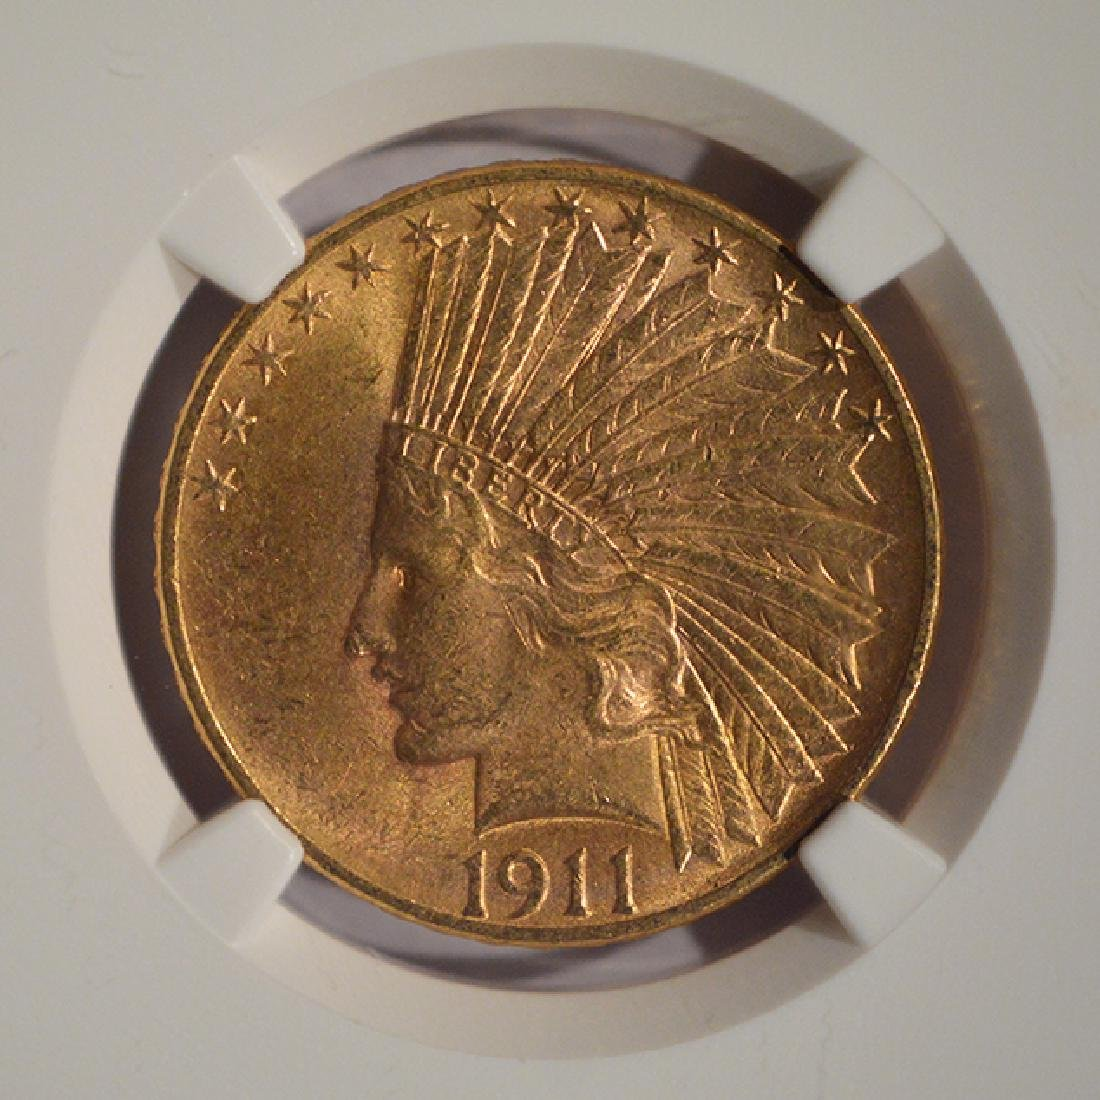 1911 $10 Liberty Head Eagle Gold Coin NGC MS62 - 3